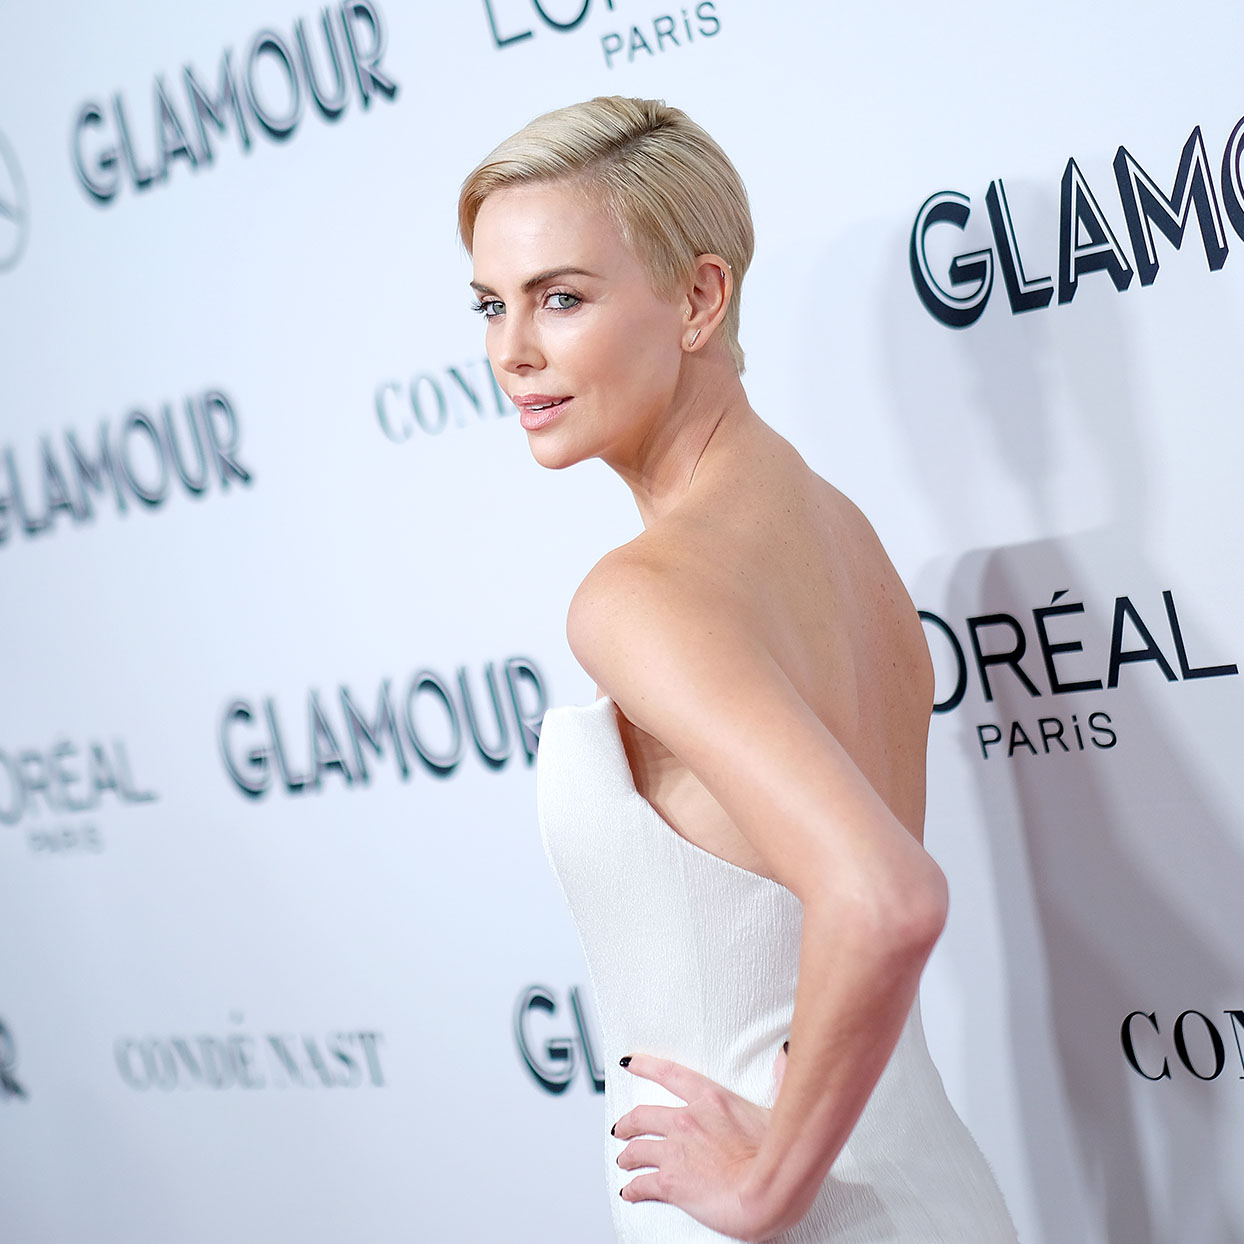 Charlize Theron was criticized for her weight gain.